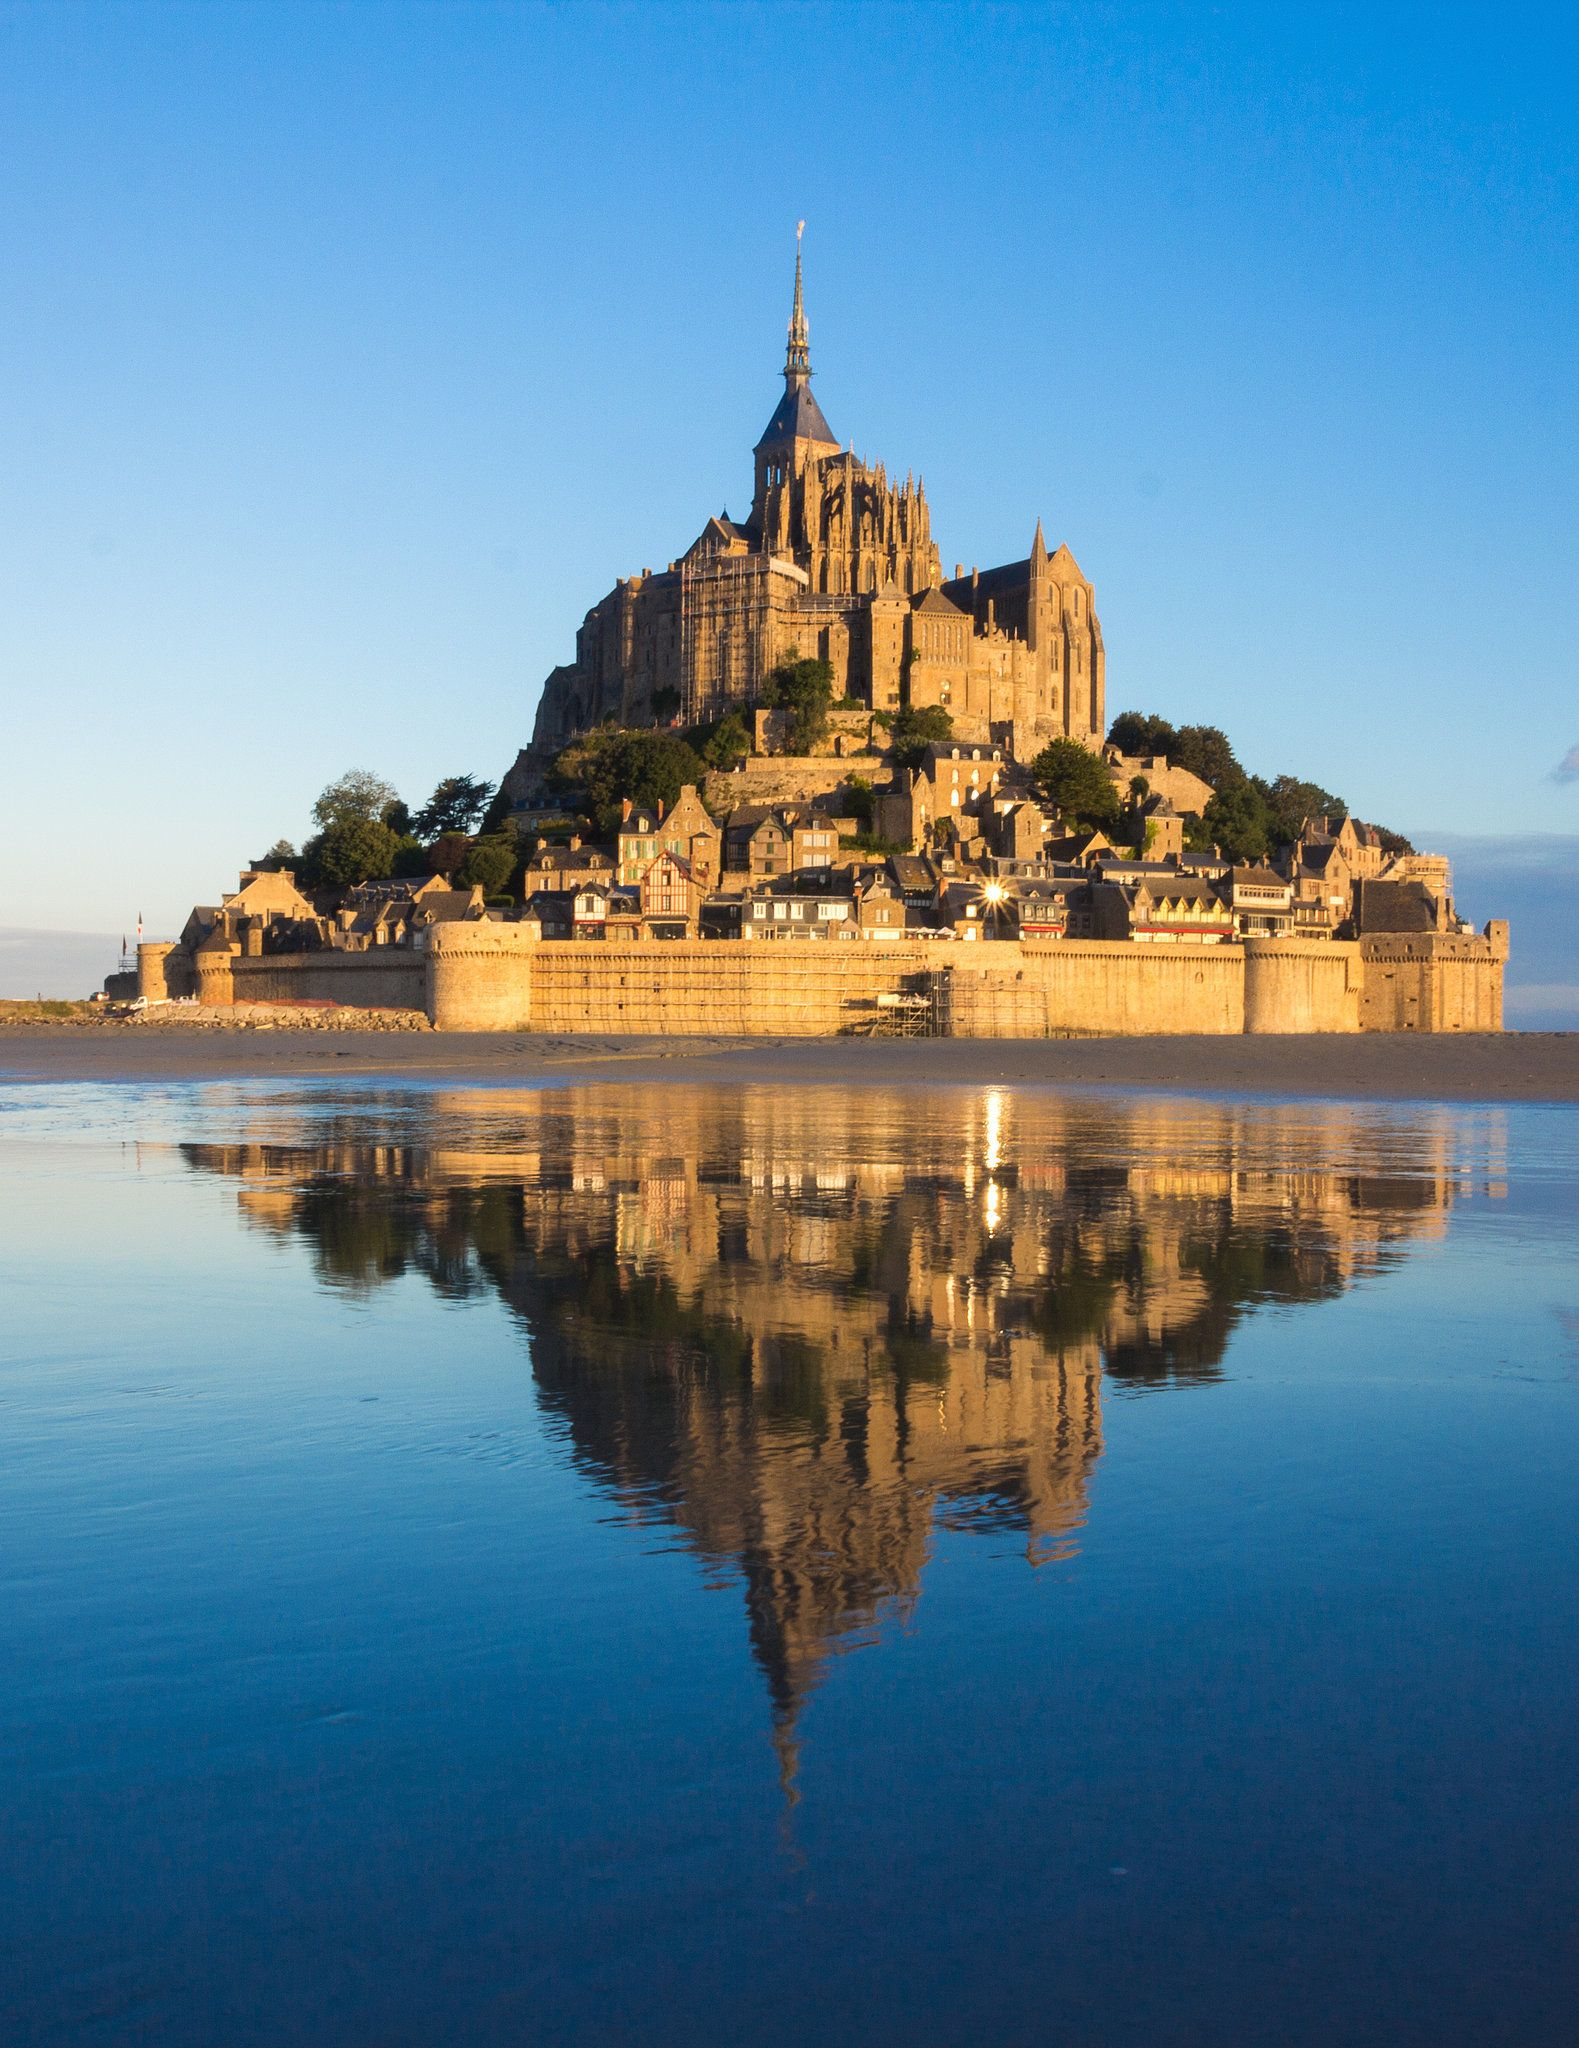 Mont Saint-Michel / You haven't seen all of France until you have seen this ancient island commune.